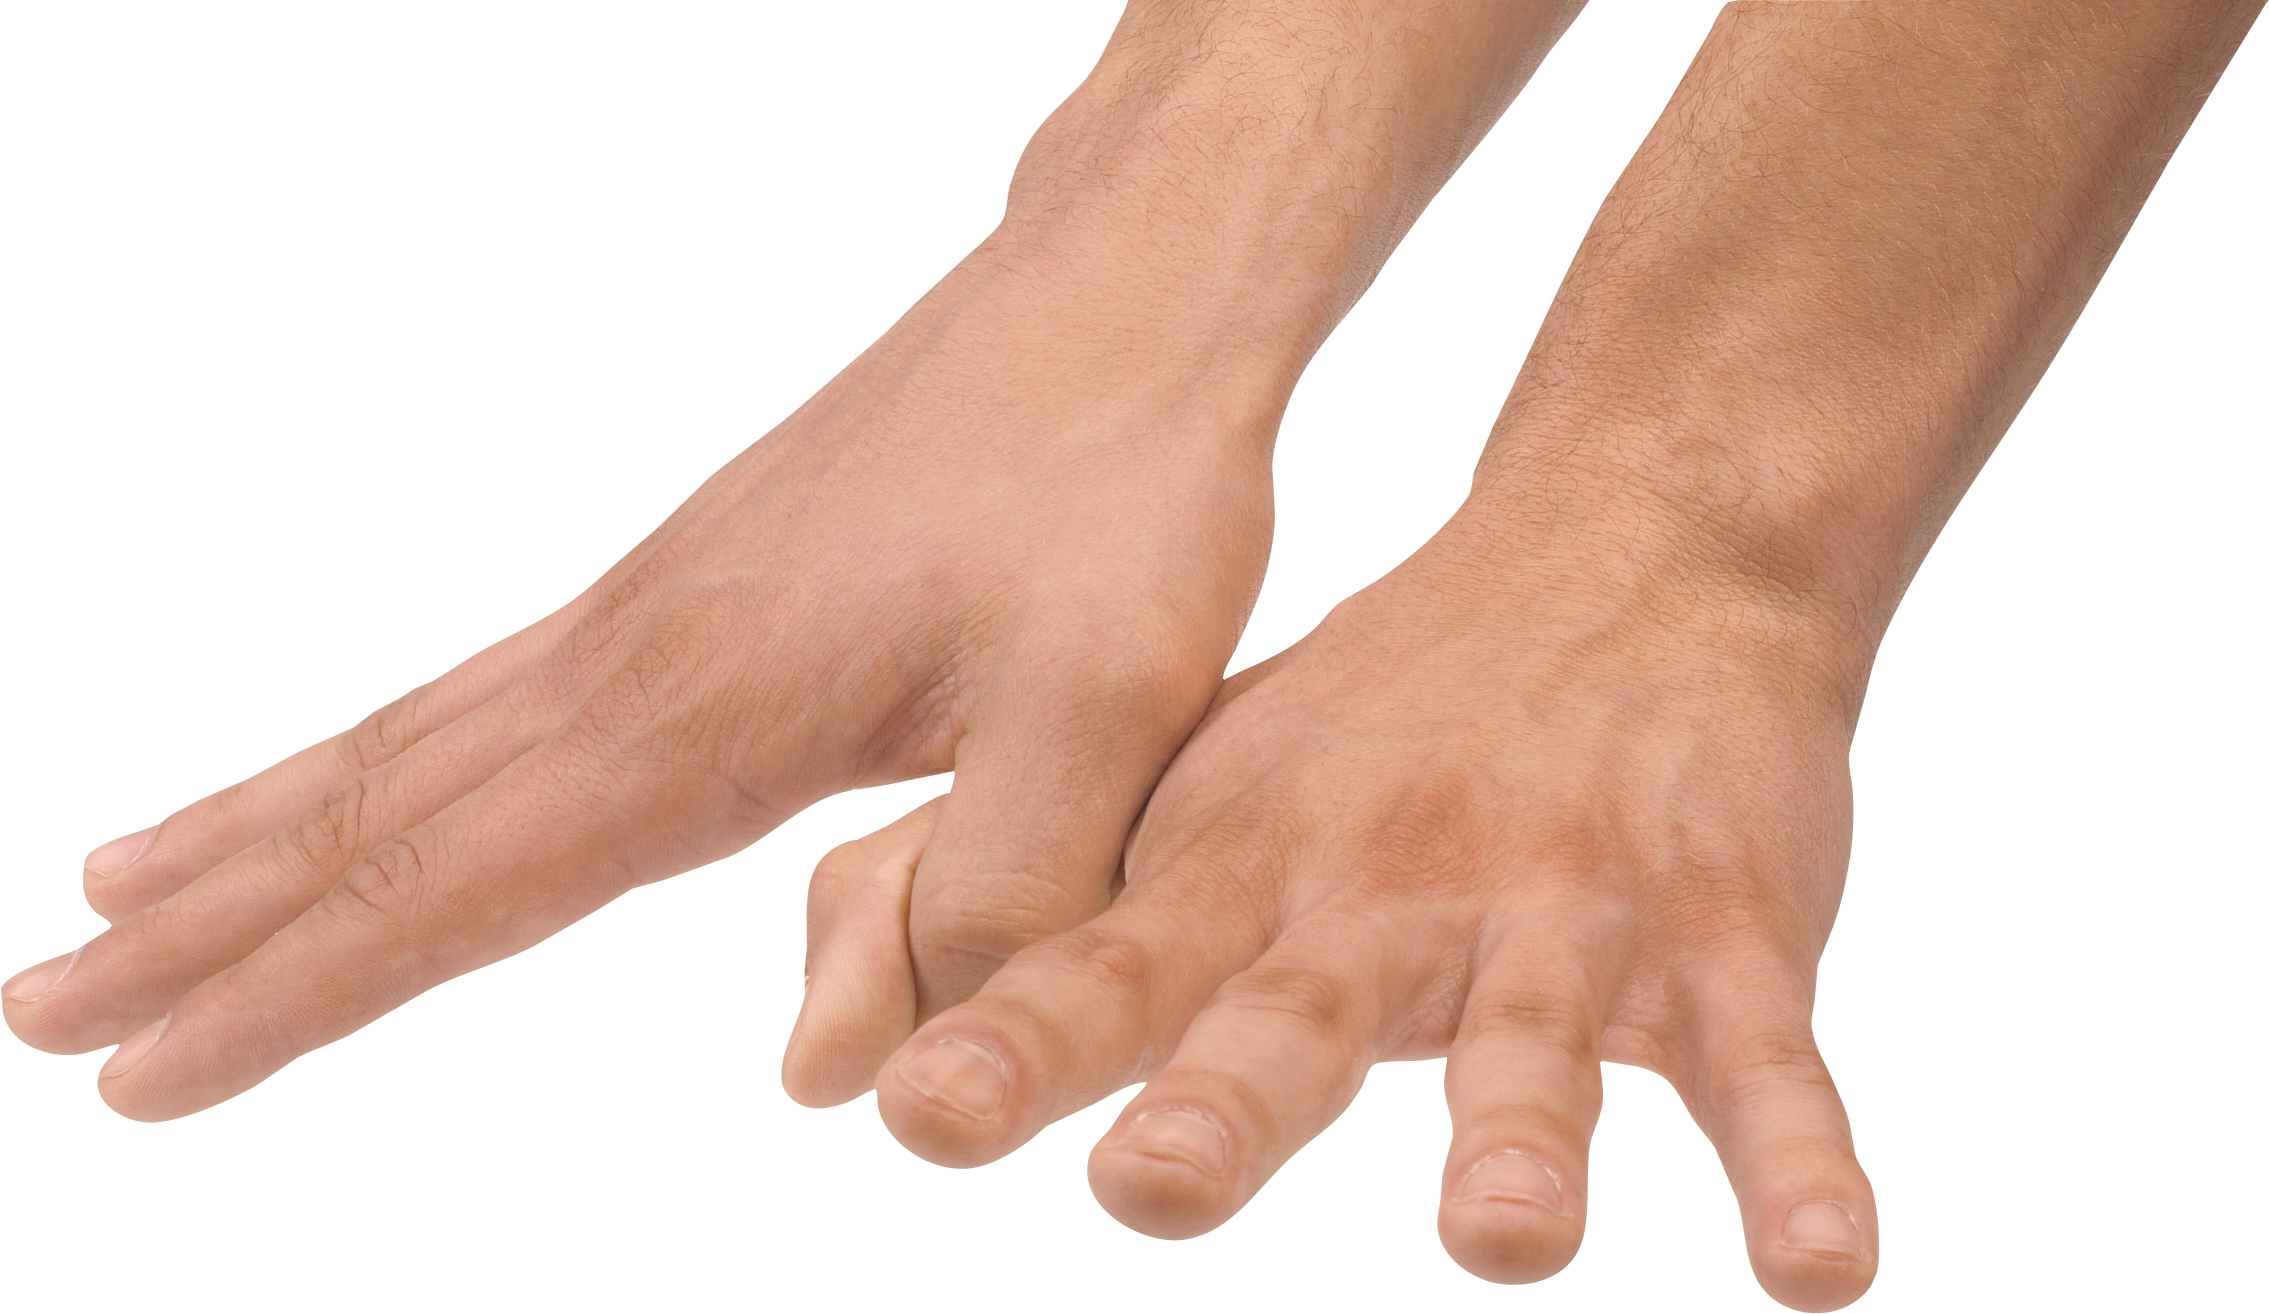 Human arms png. Hands free images pictures